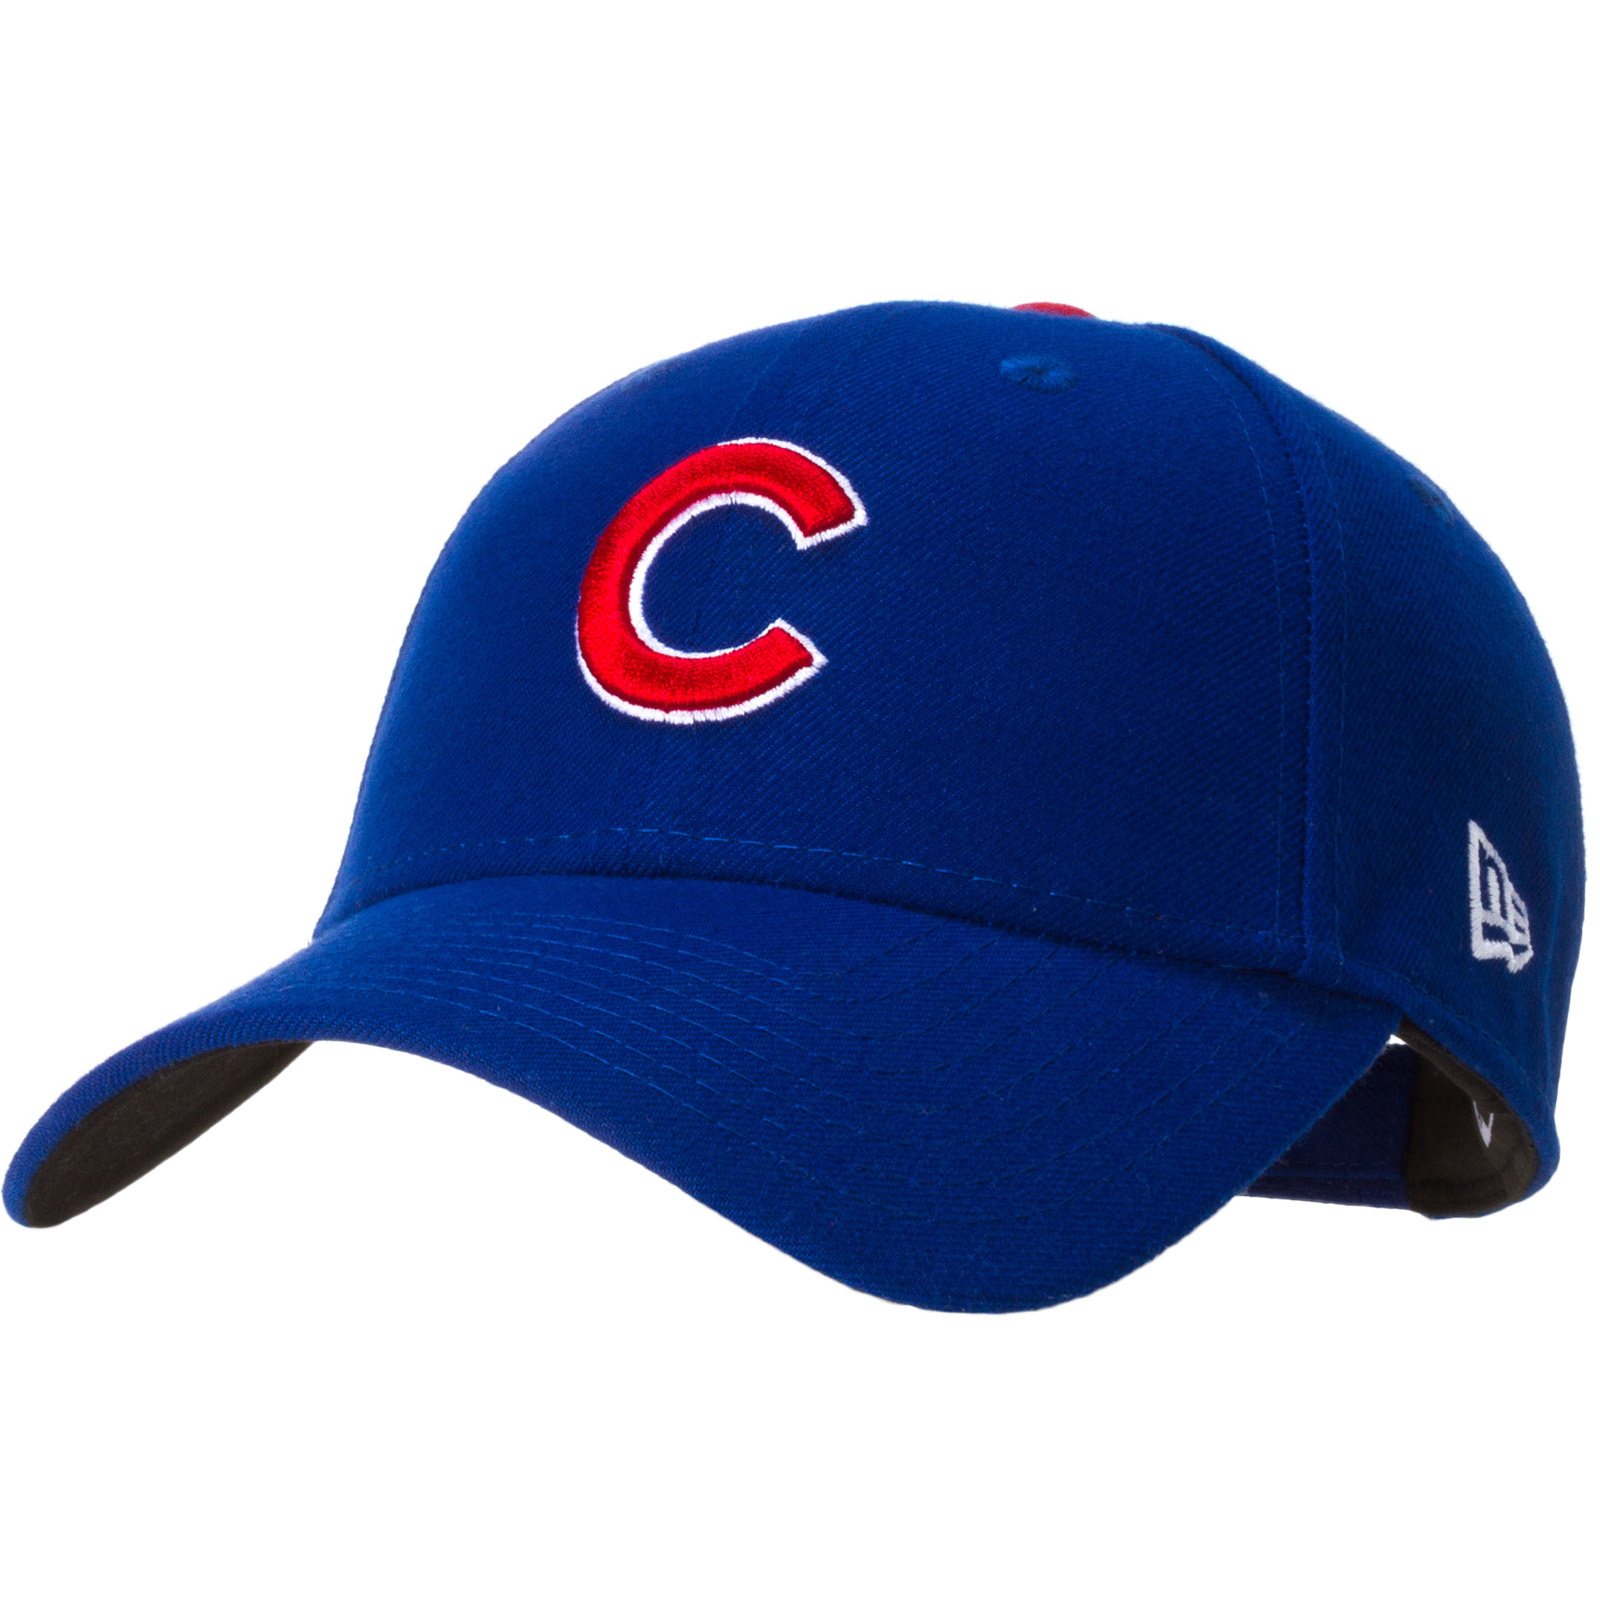 075108dbbff Chicago Cubs Adjustable Light Royal Hat with